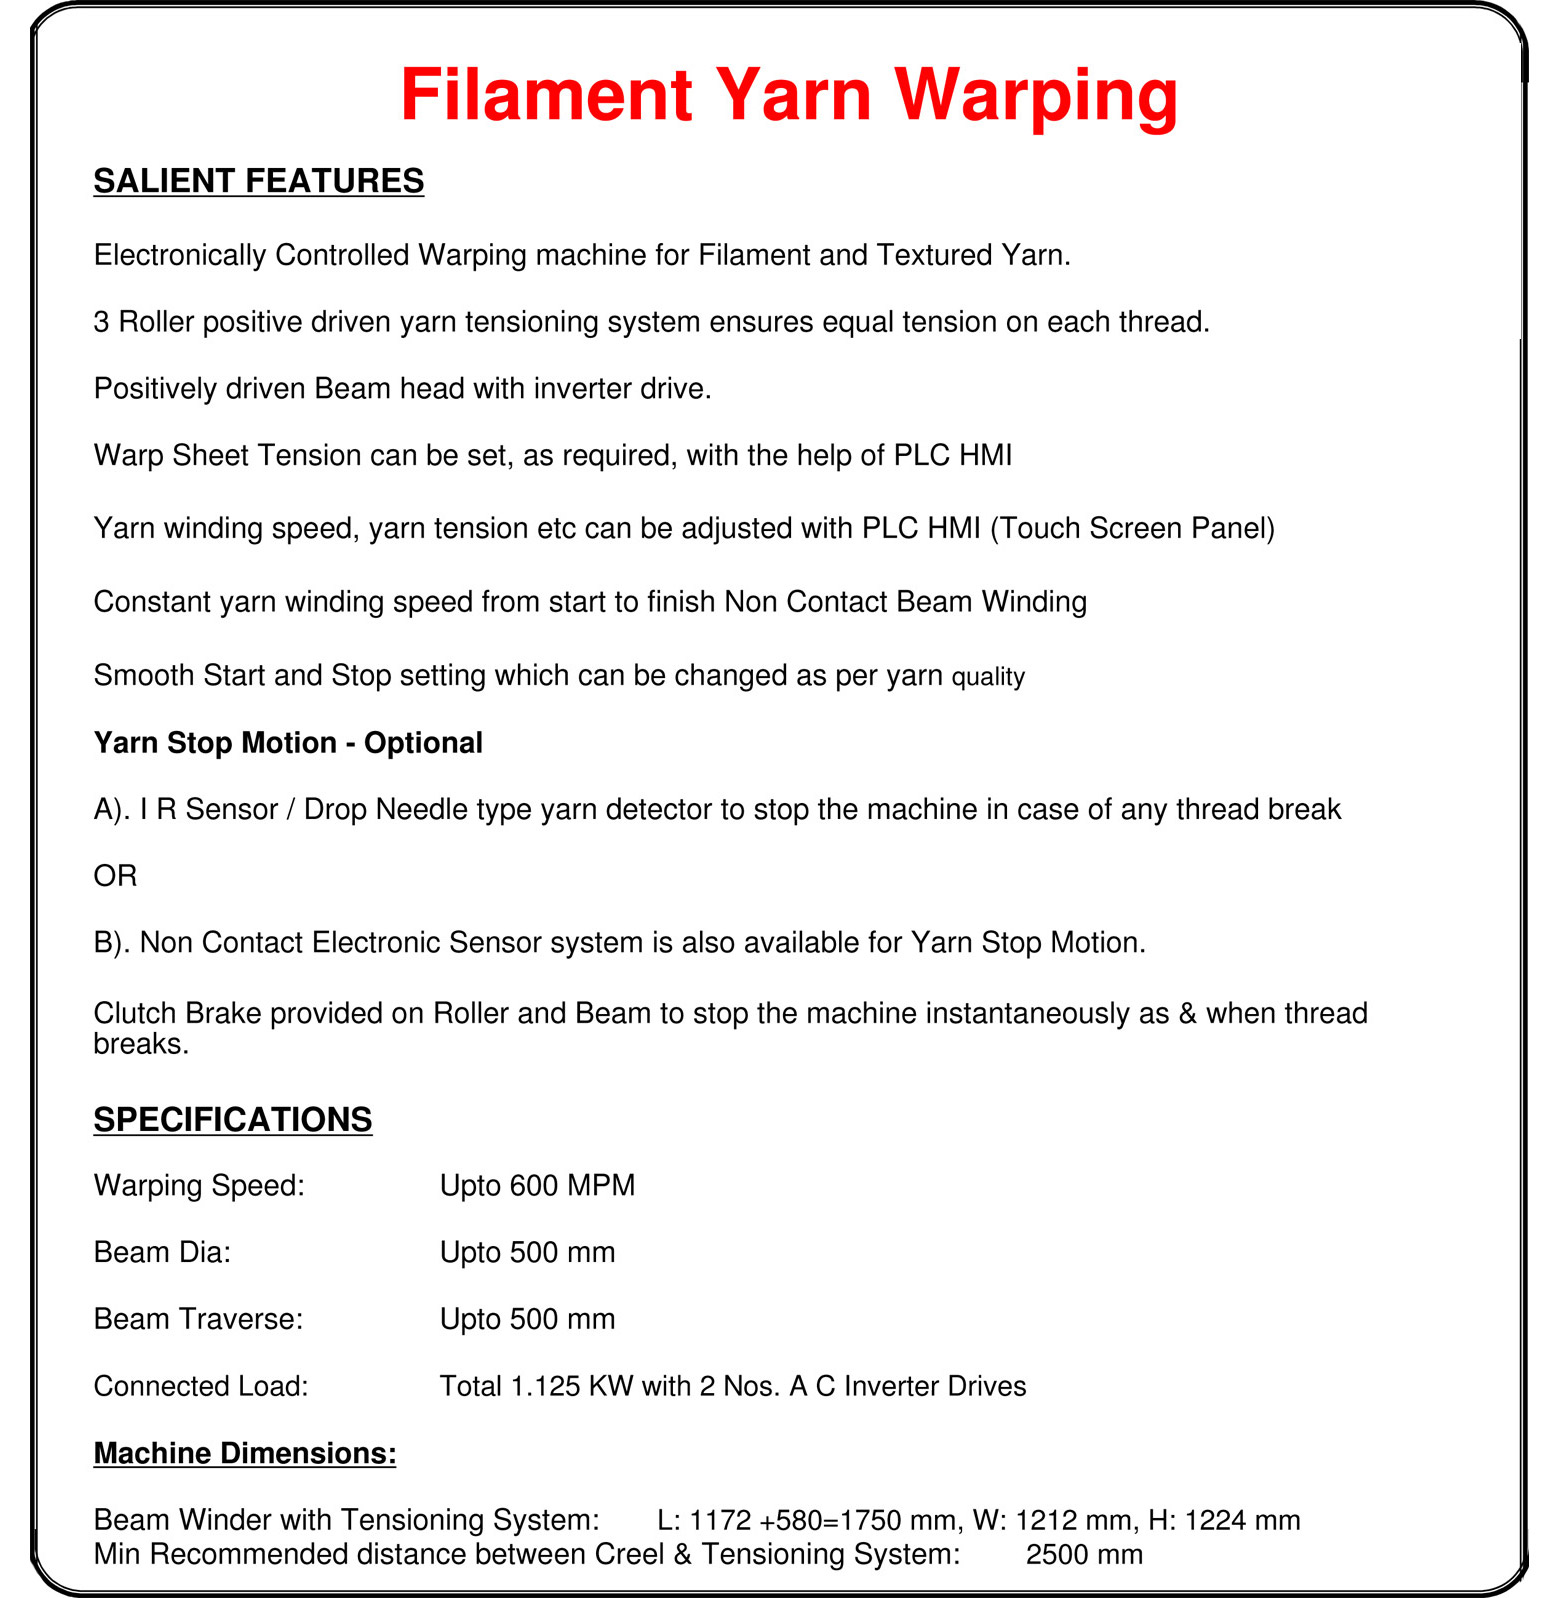 Yarn Warping for Narrow Fabric Technical Specifications